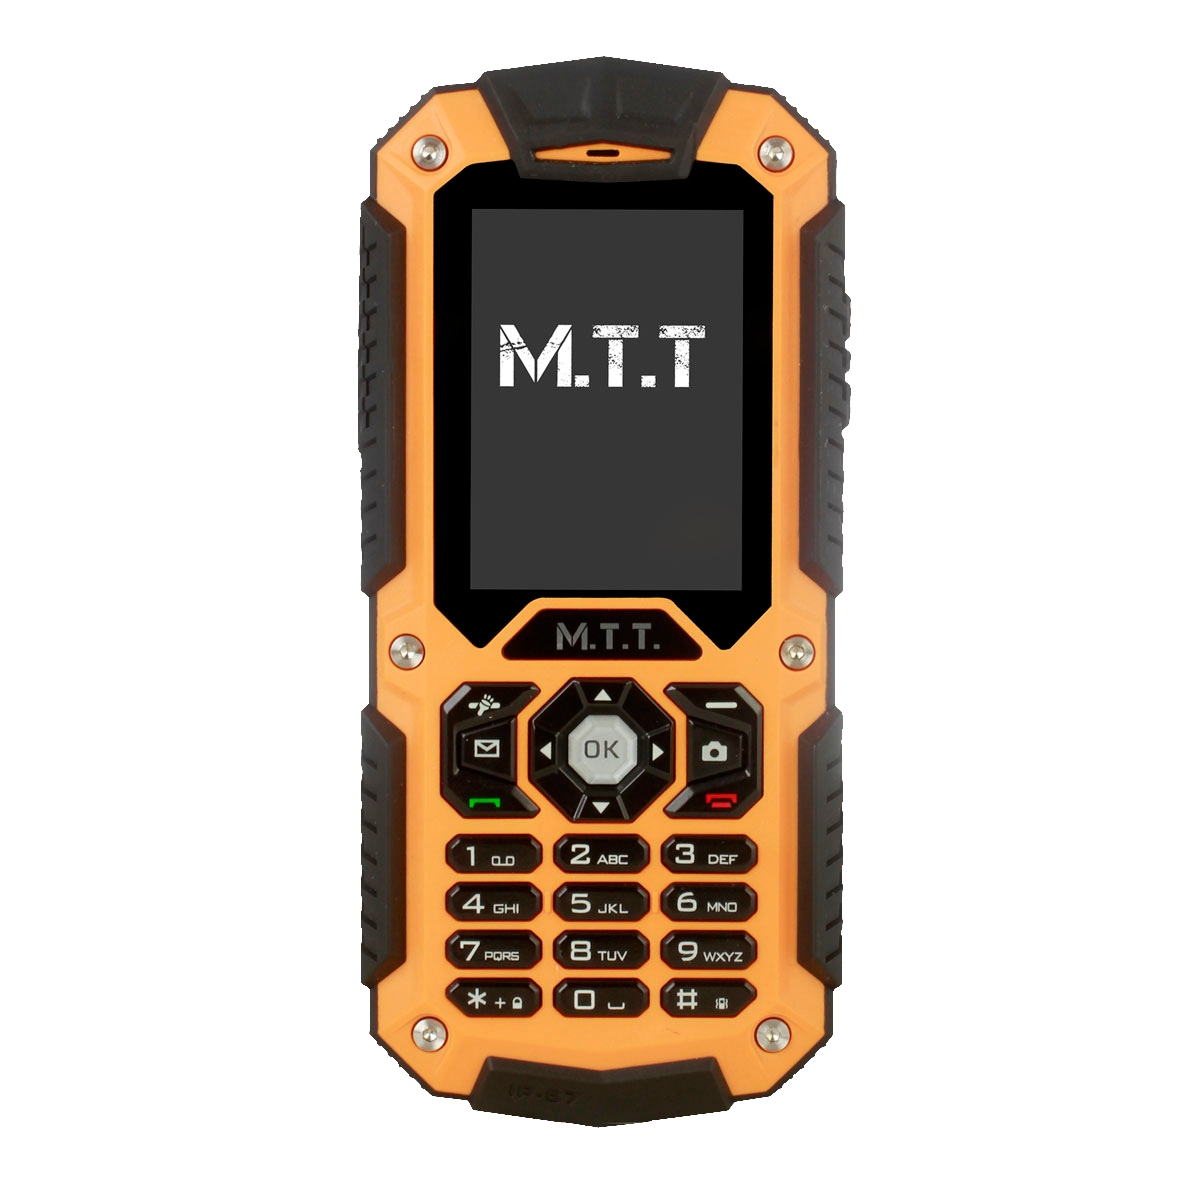 gps rover devices of back can vs rugged attached show on be to smartphone magnetic rug phone both easily add hands the land phones explore